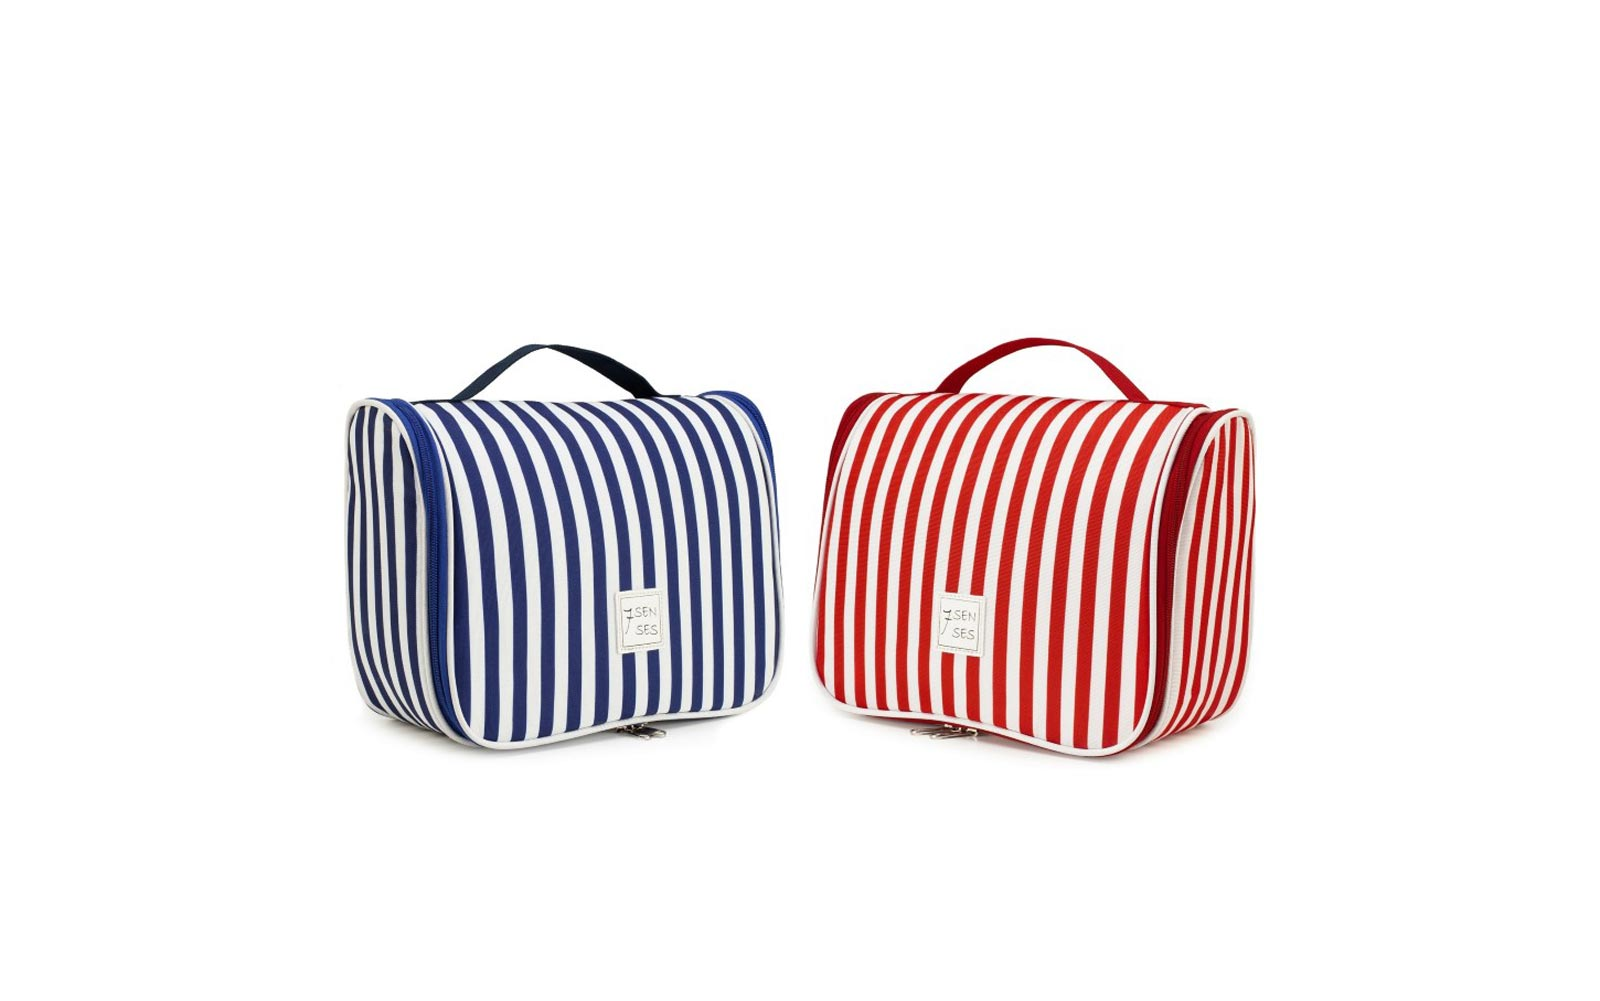 7 Senses Toiletry Bag